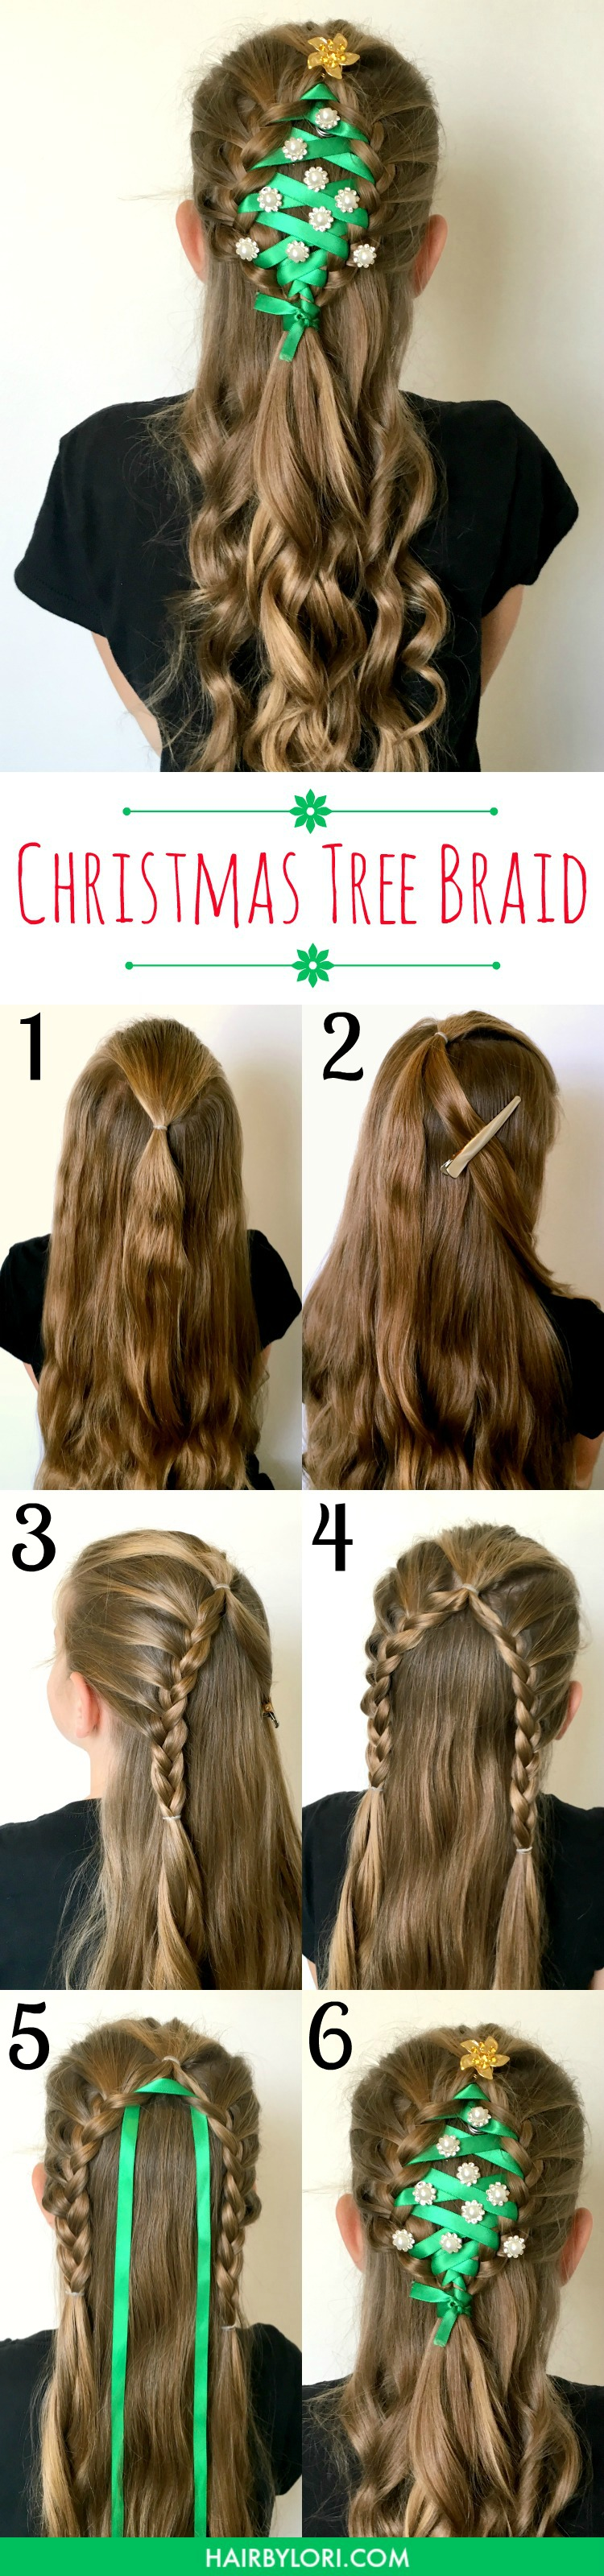 Whether you are head off to a school or work holiday party, an ugly sweater party or a family event - THIS will be the hairstyle that everyone is talking about! | OHMY-CREATIVE.COM